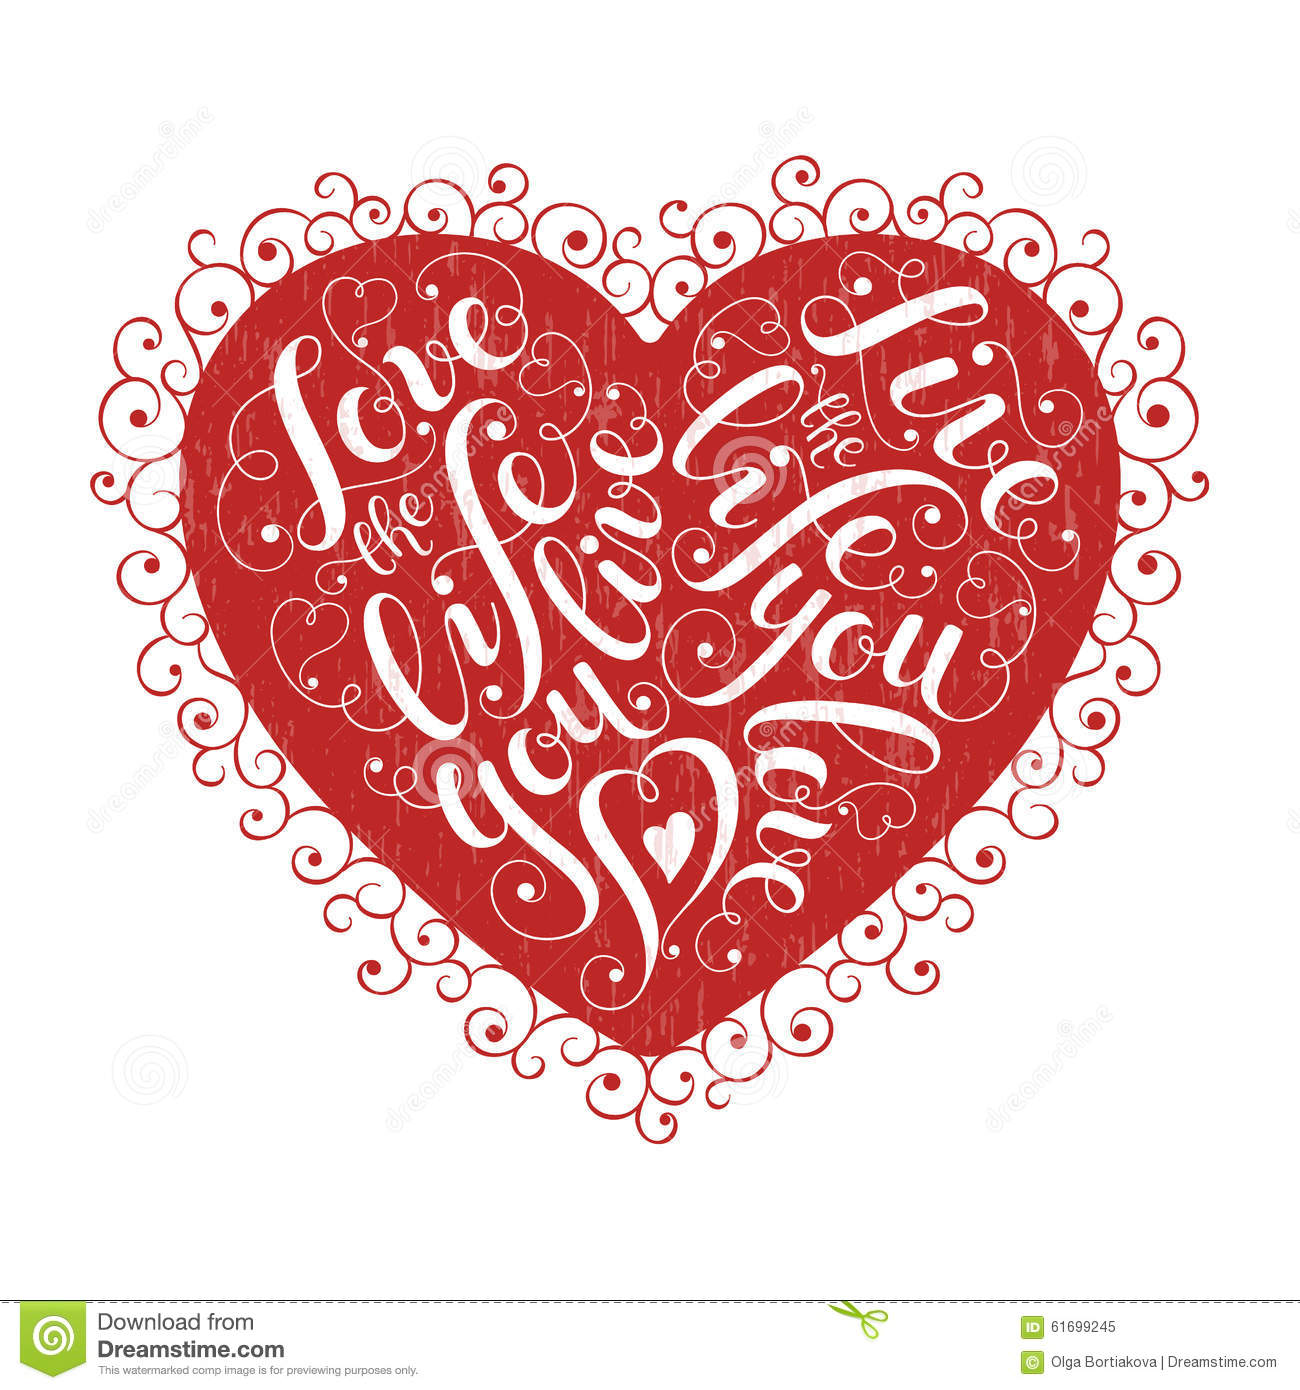 Inspiring Heart Shaped Poster Stock Vector